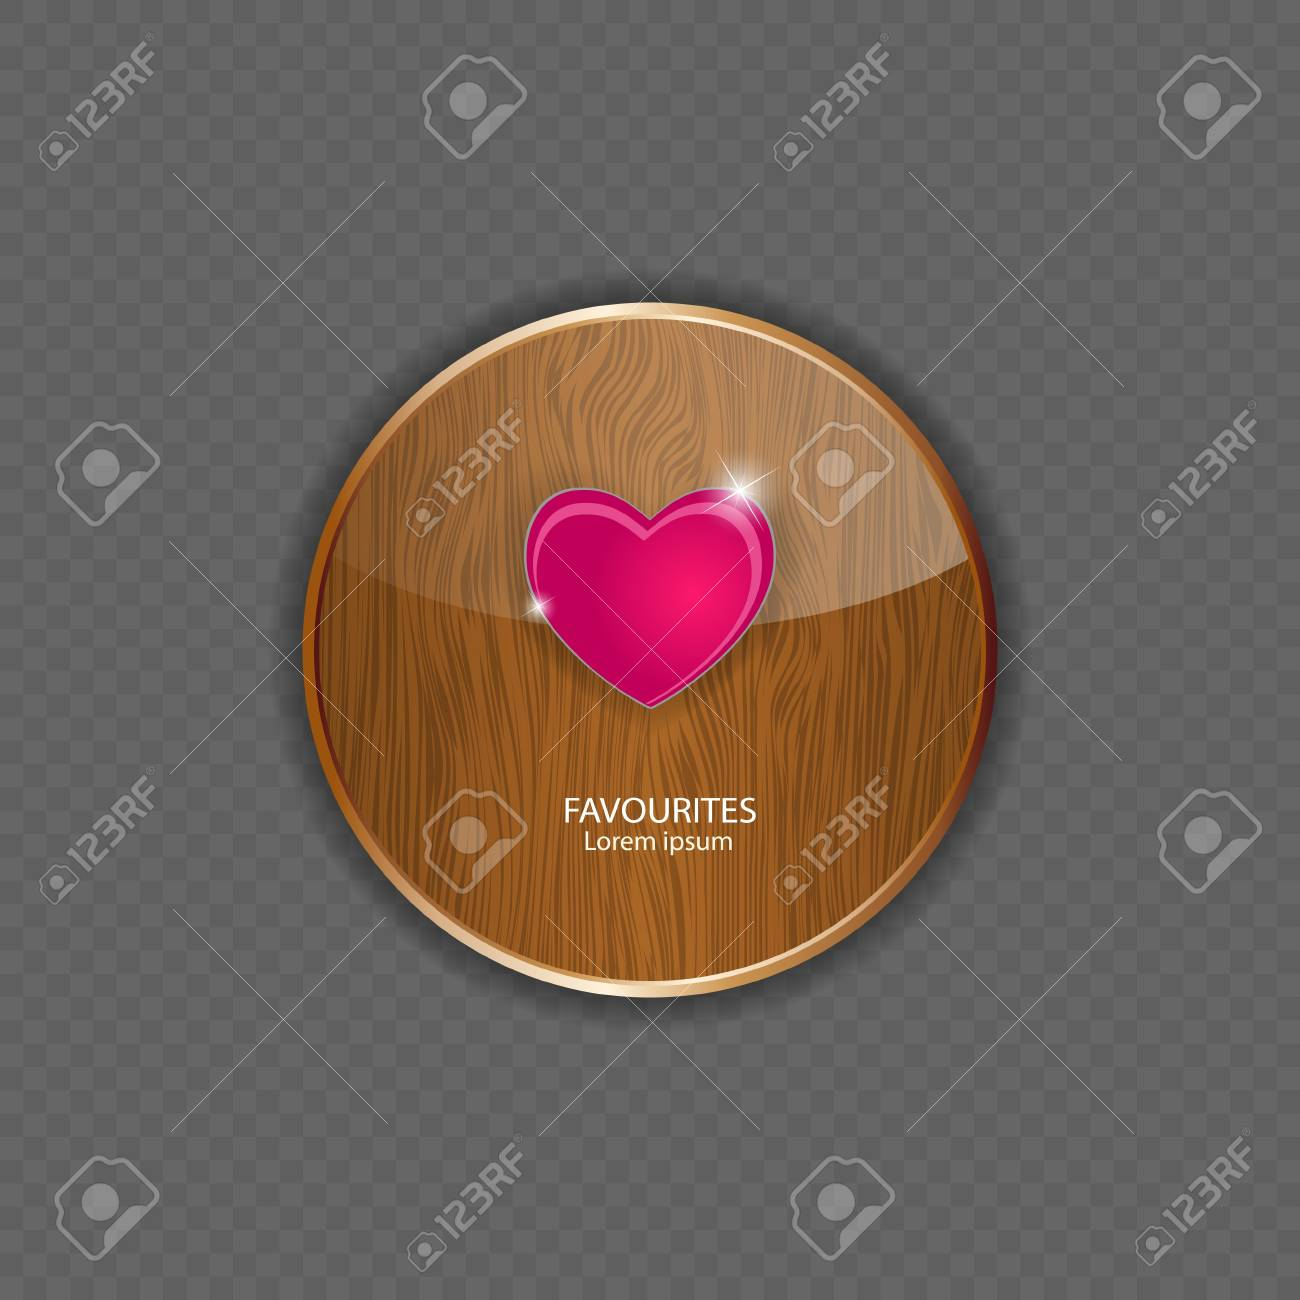 Heart wood application icons vector illustration Stock Vector - 21878523